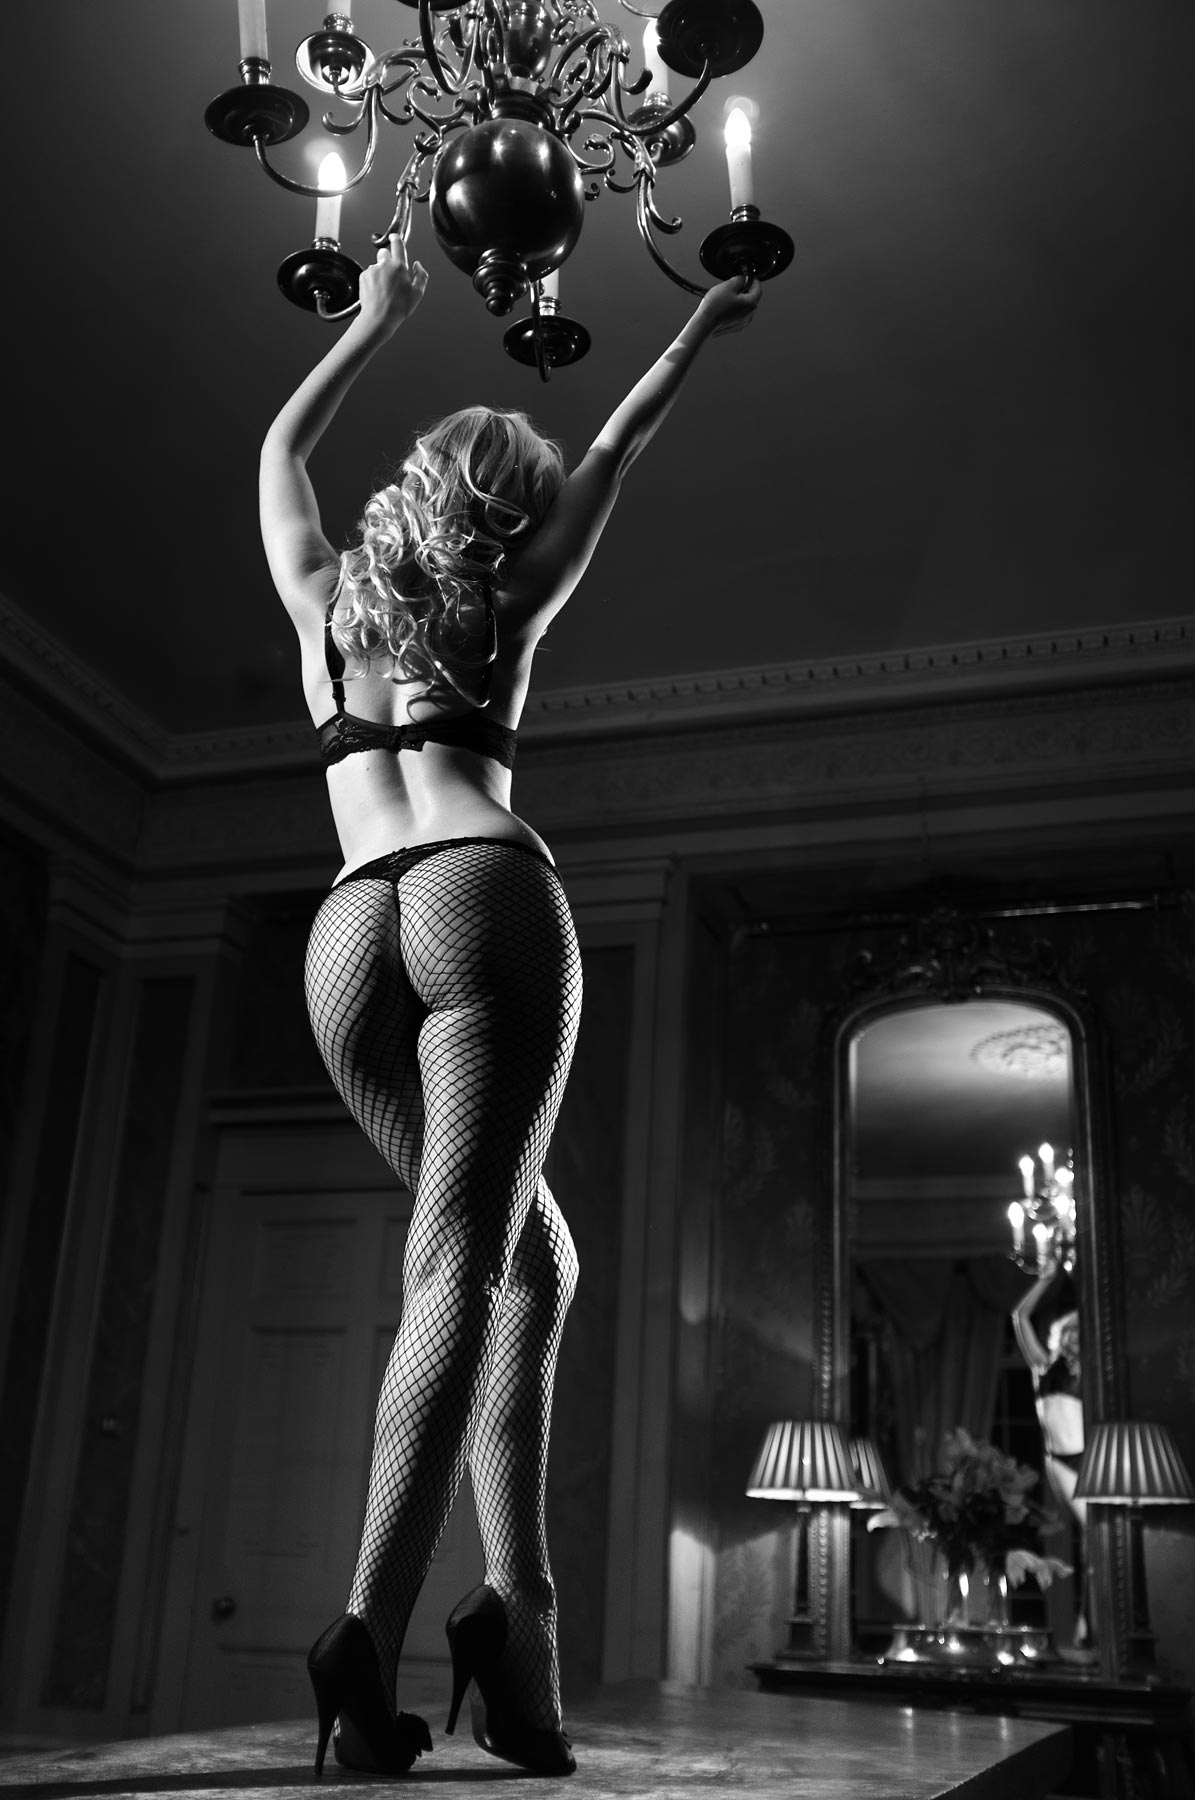 Raphaella McNamara on a table in fishnet tights swinging from a chandelier - Monochrome